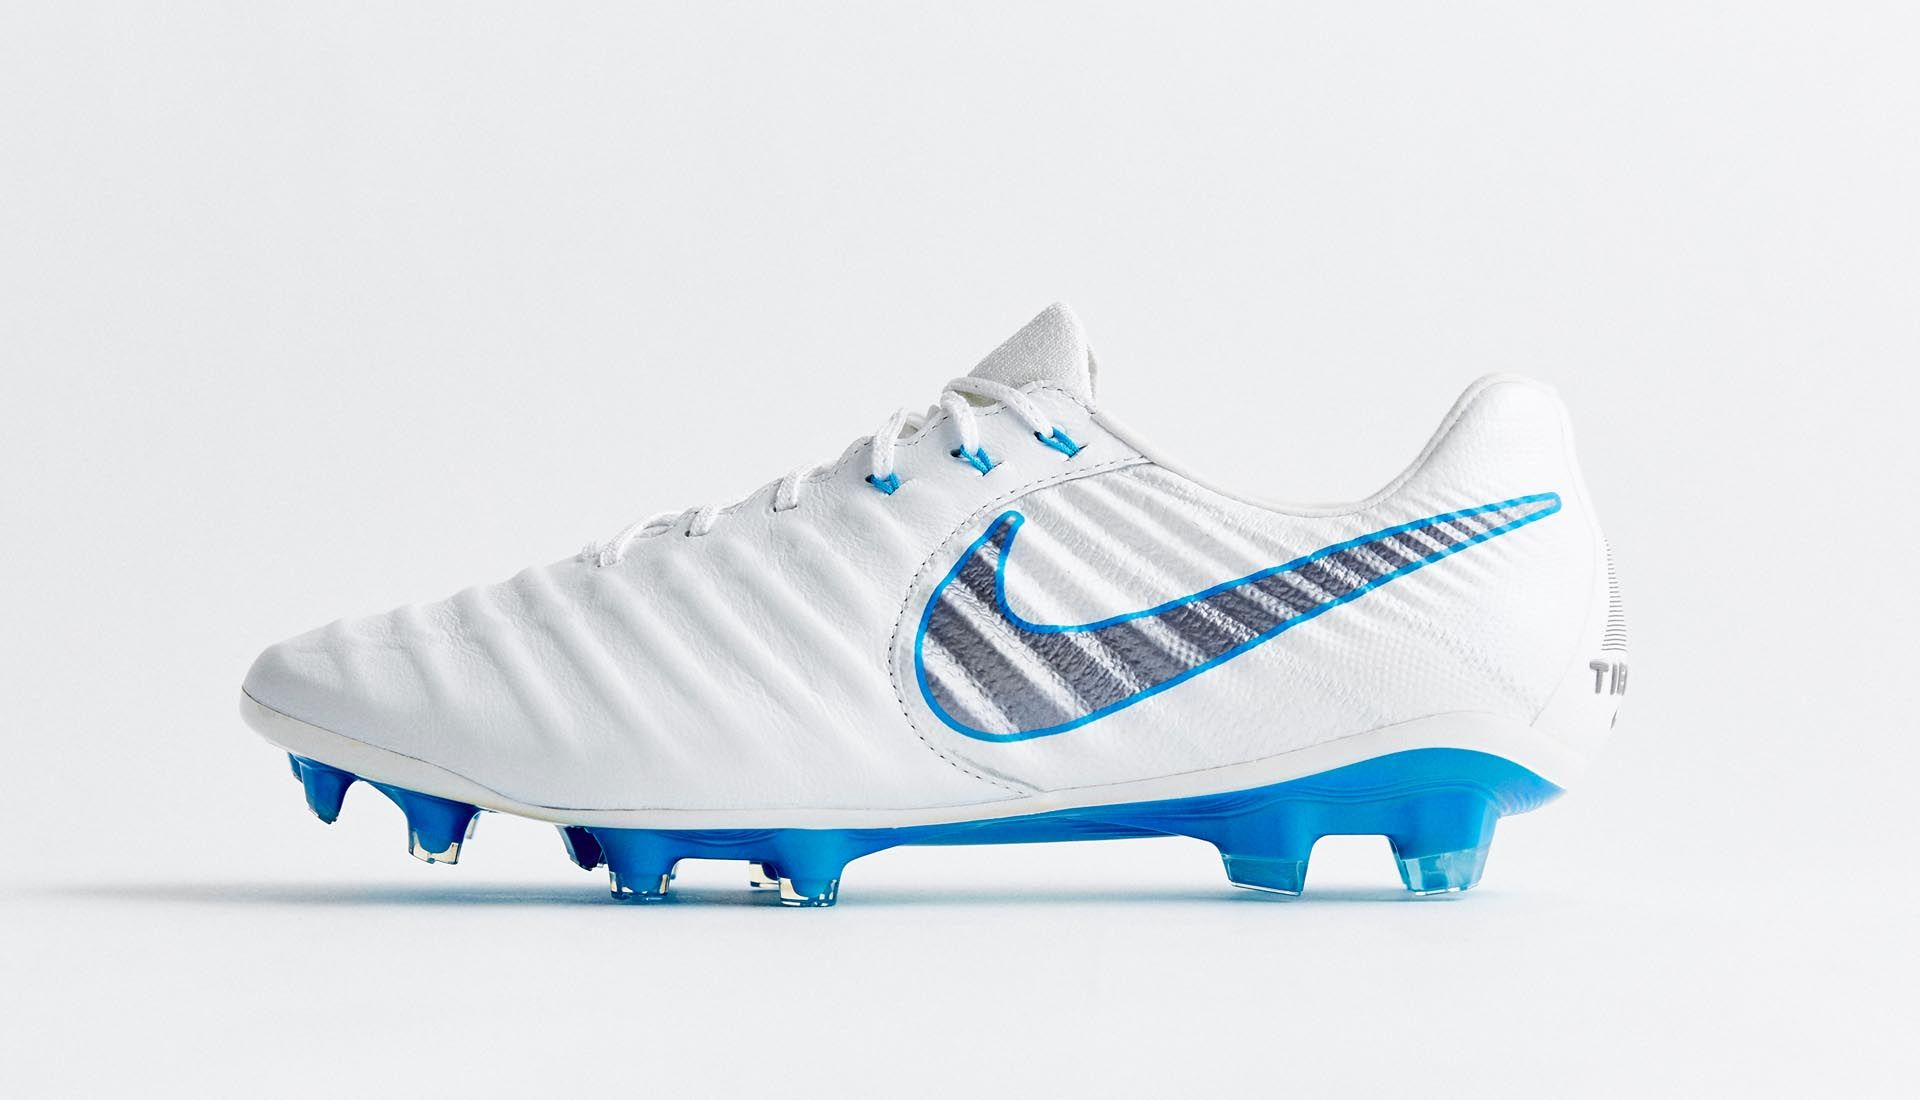 6 Nike Just Do It Pack World Cup 2018 Jpg Zapatos De Futbol Nike Nike Futbol Zapatos De Futbol